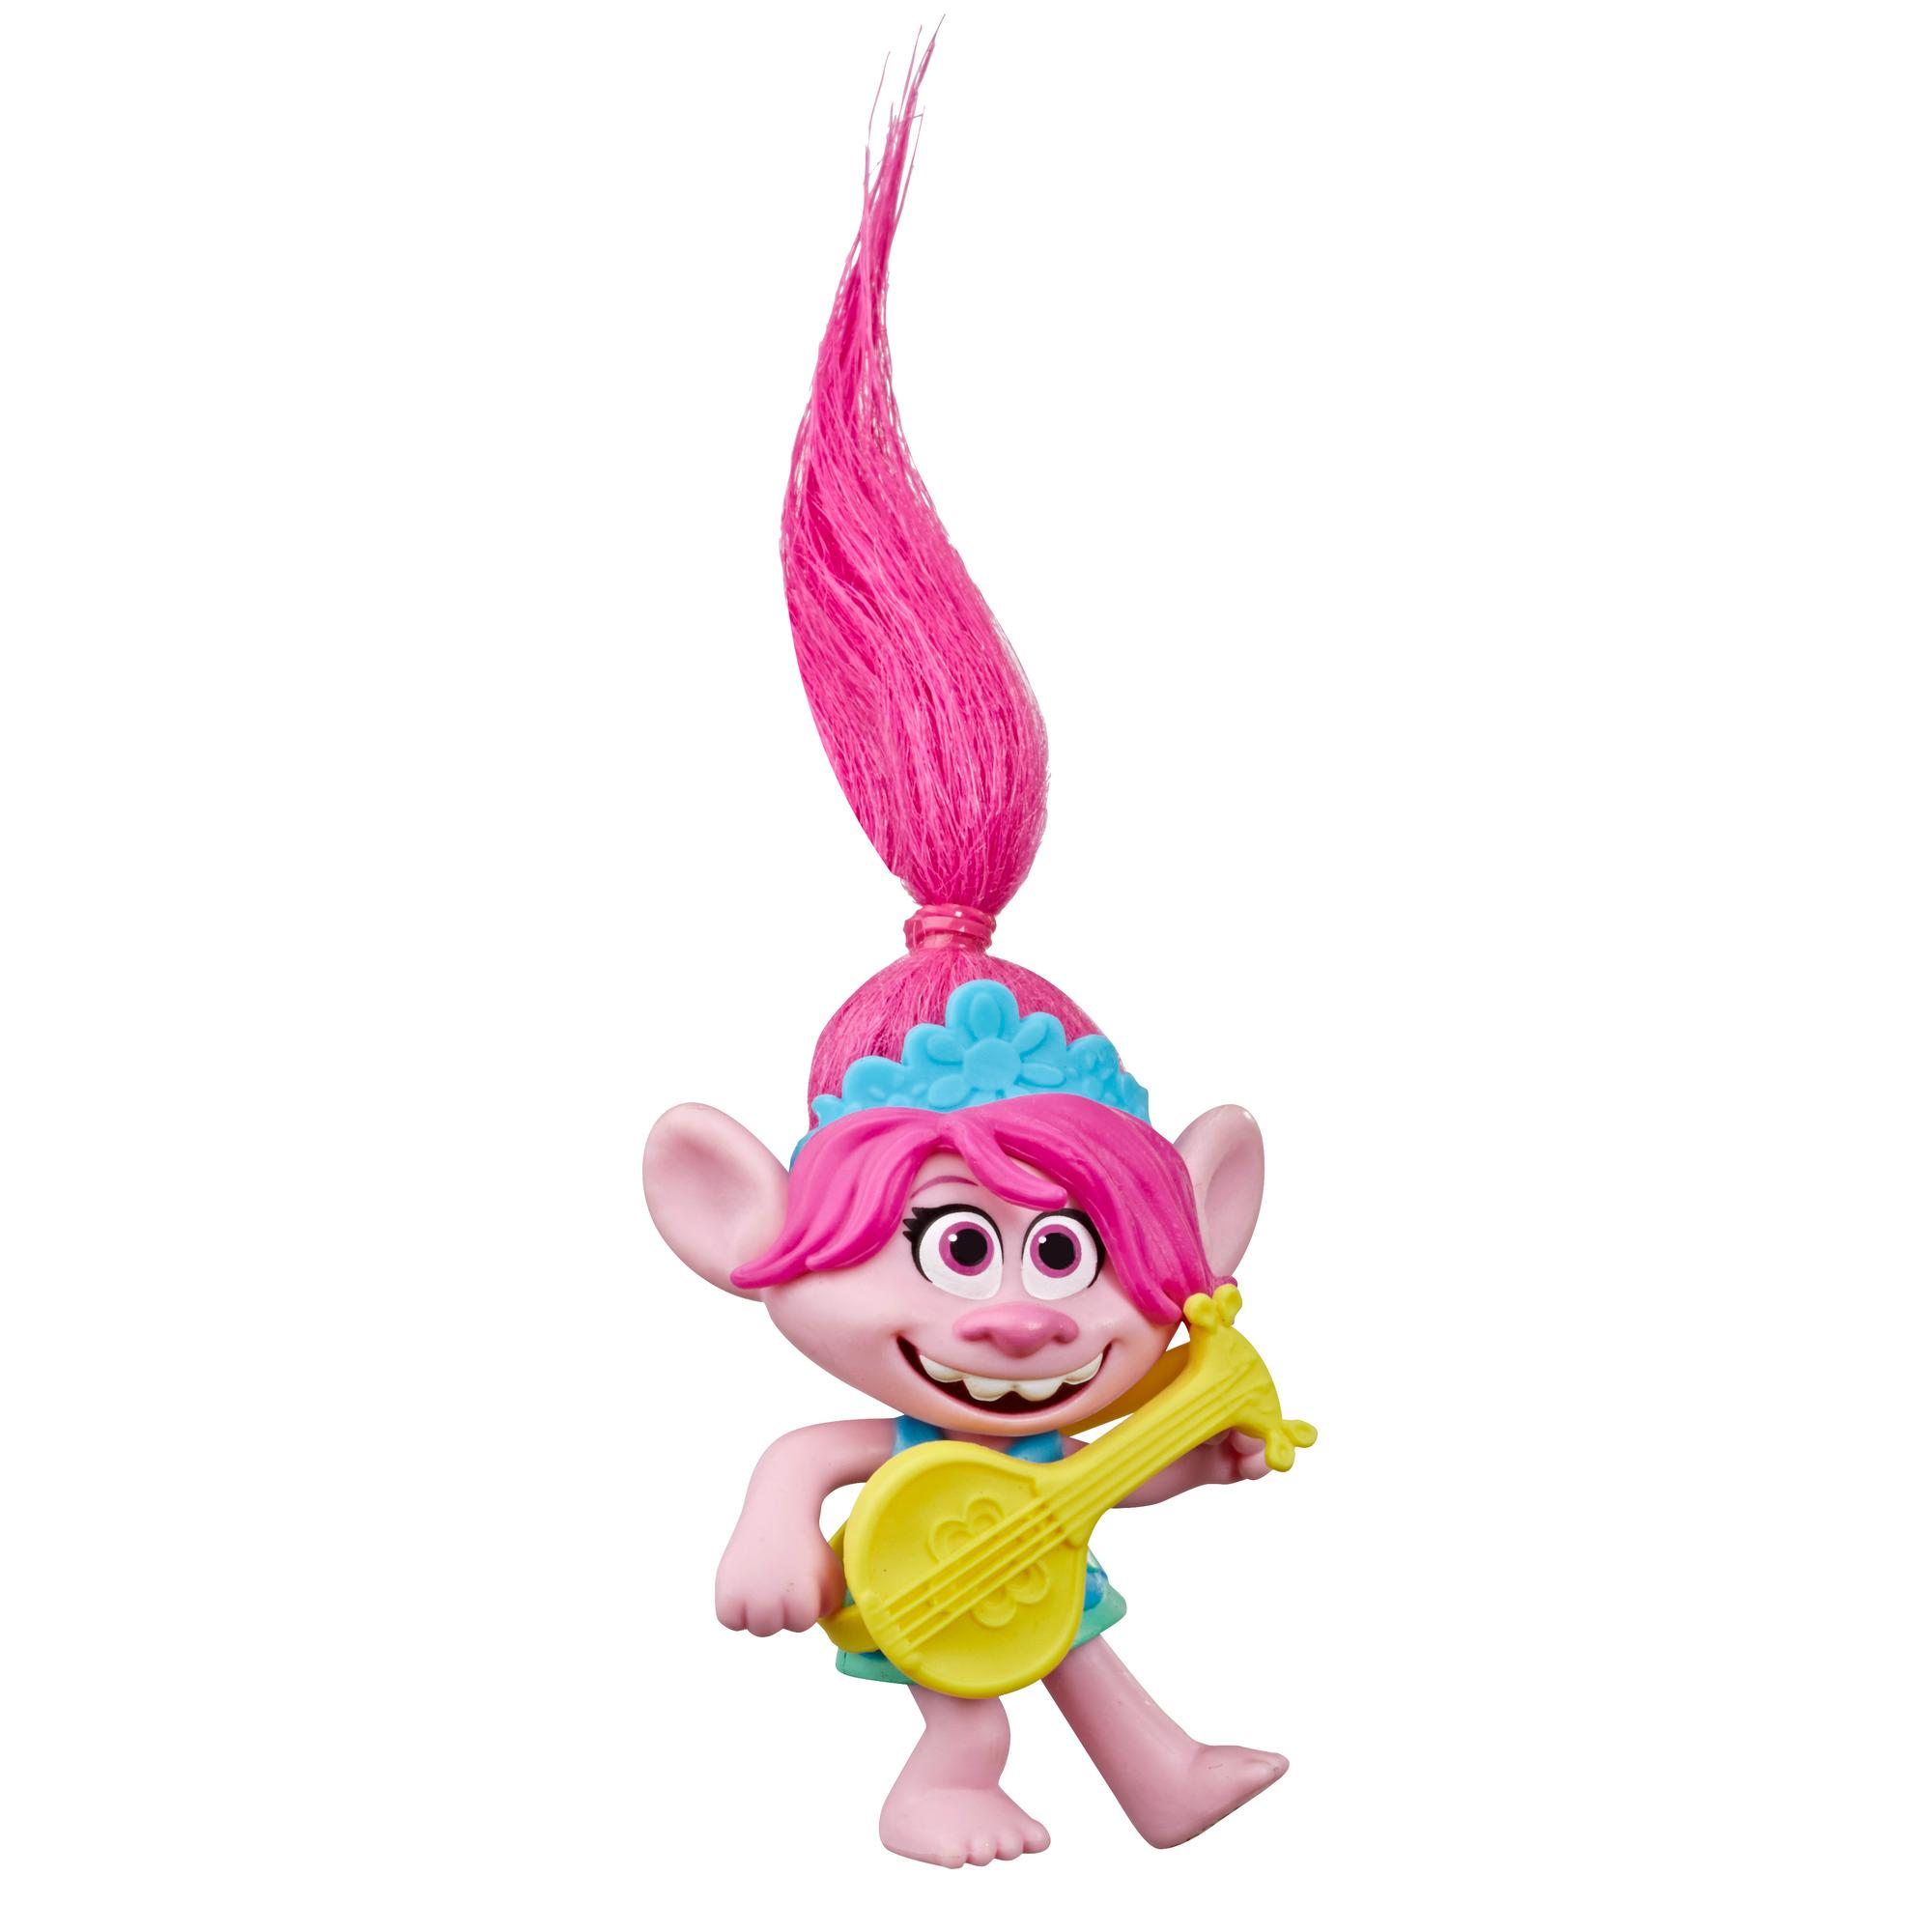 DreamWorks Trolls World Tour Poppy, pop met ukelele, speeltje geïnspireerd op de film Trolls World Tour